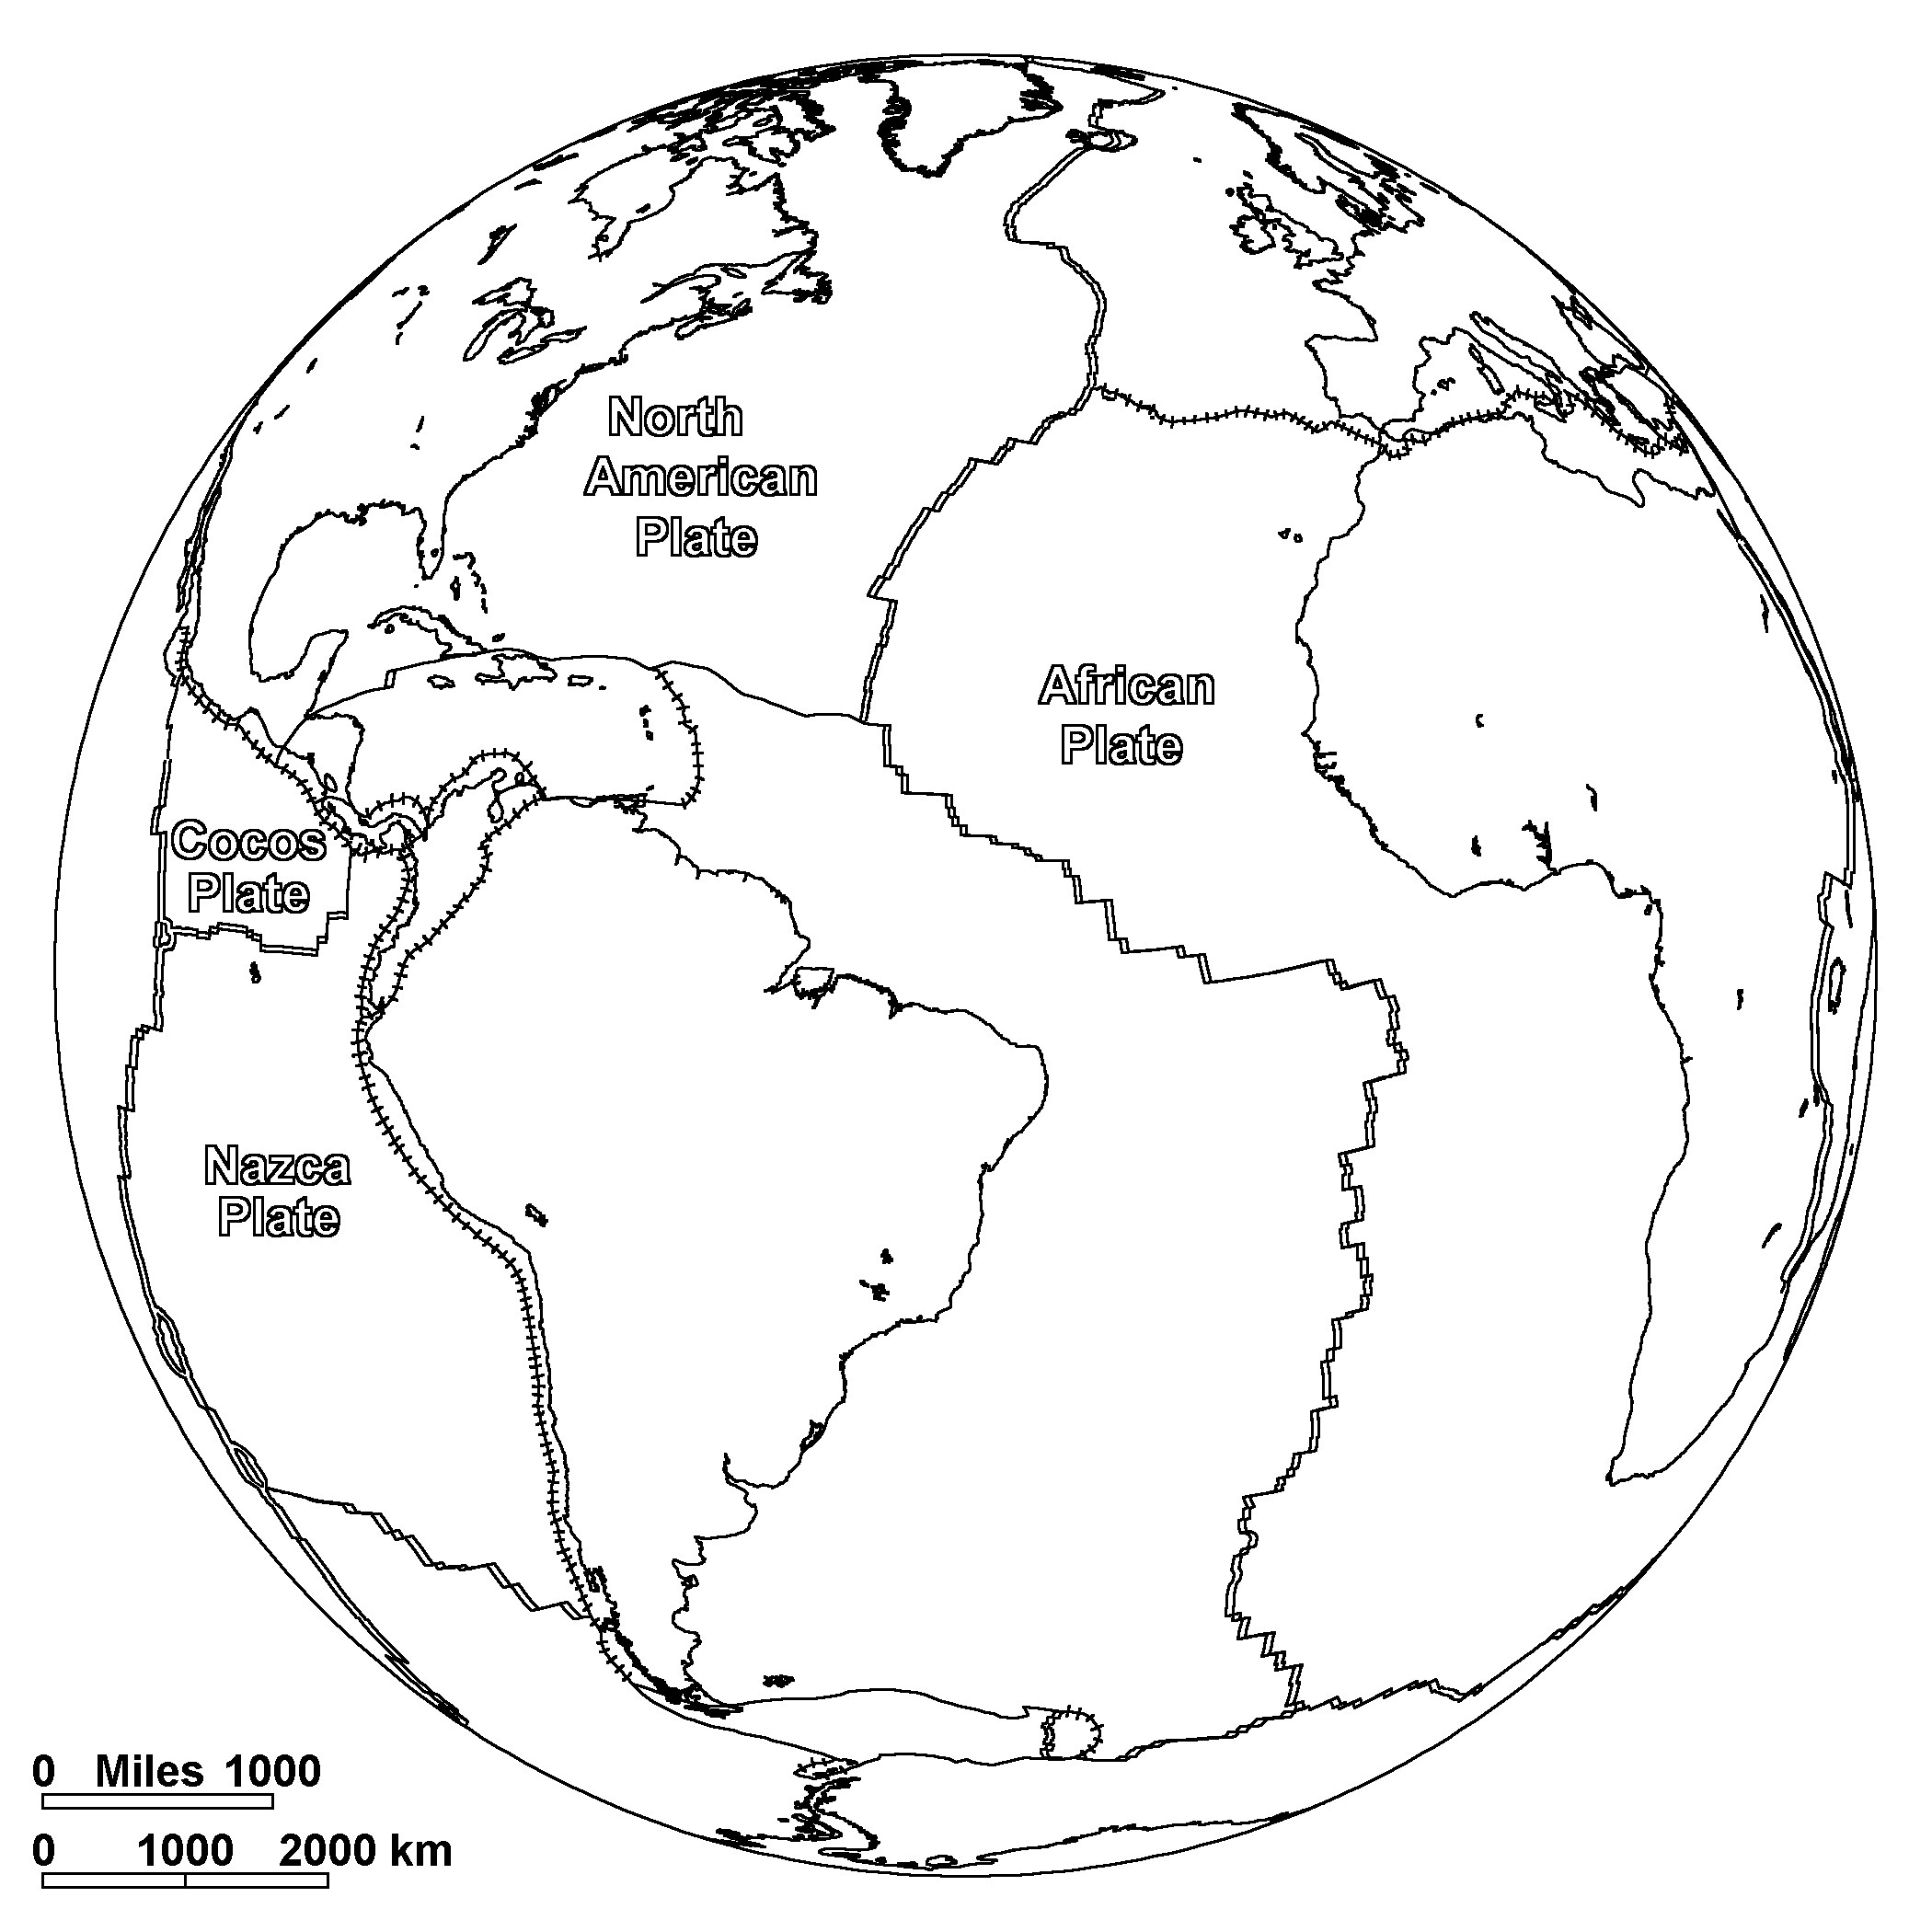 coloring printable world map for kids printable world map coloring page for kids cool2bkids world for map kids printable coloring